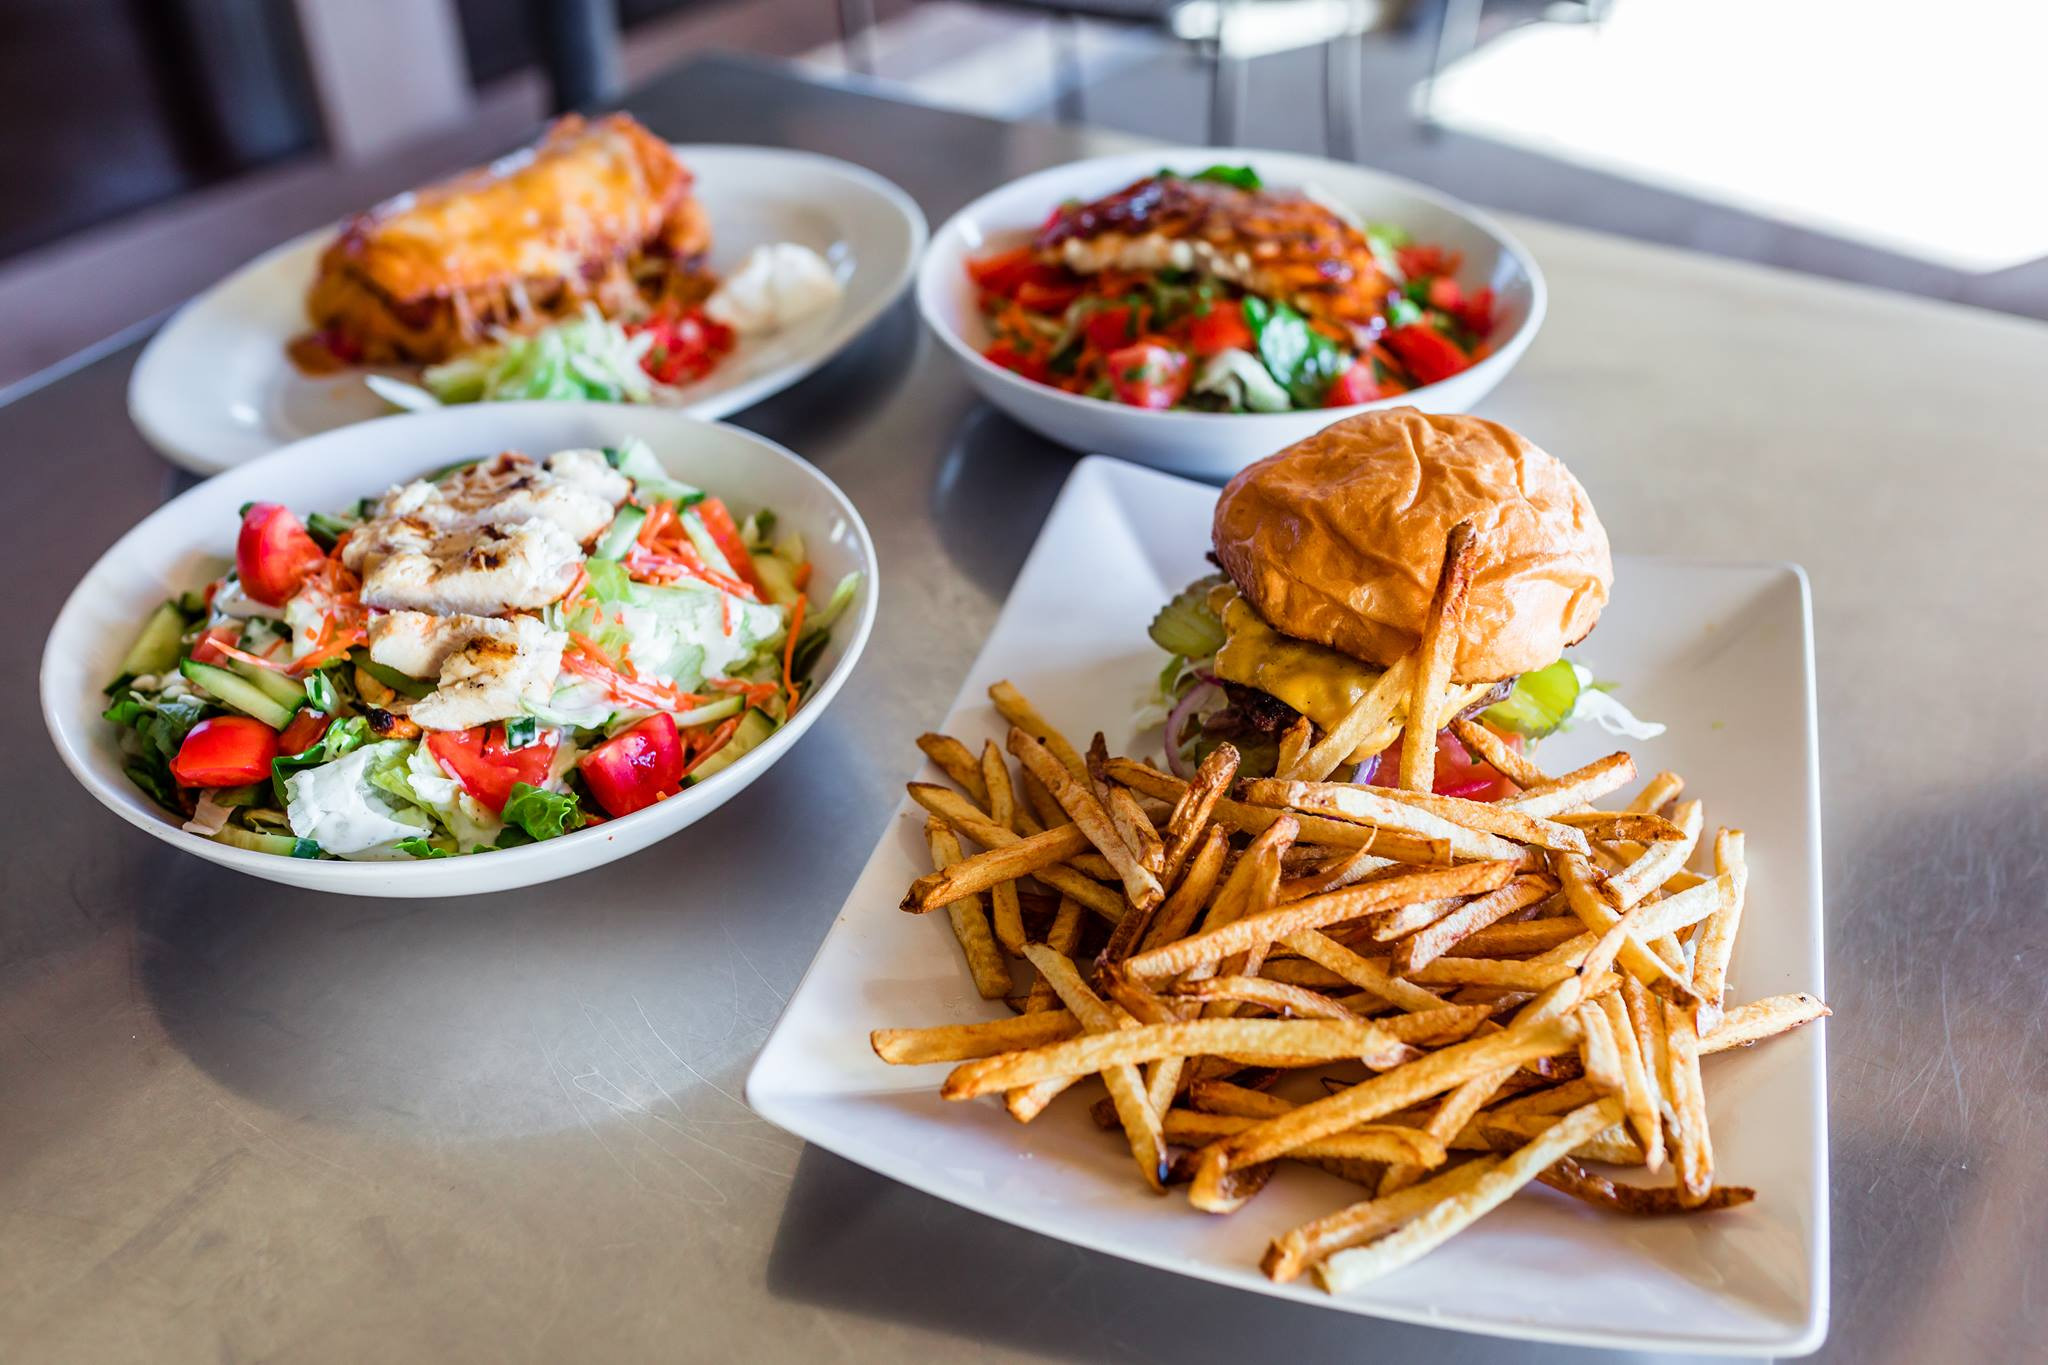 20 mile tap house burger and salads